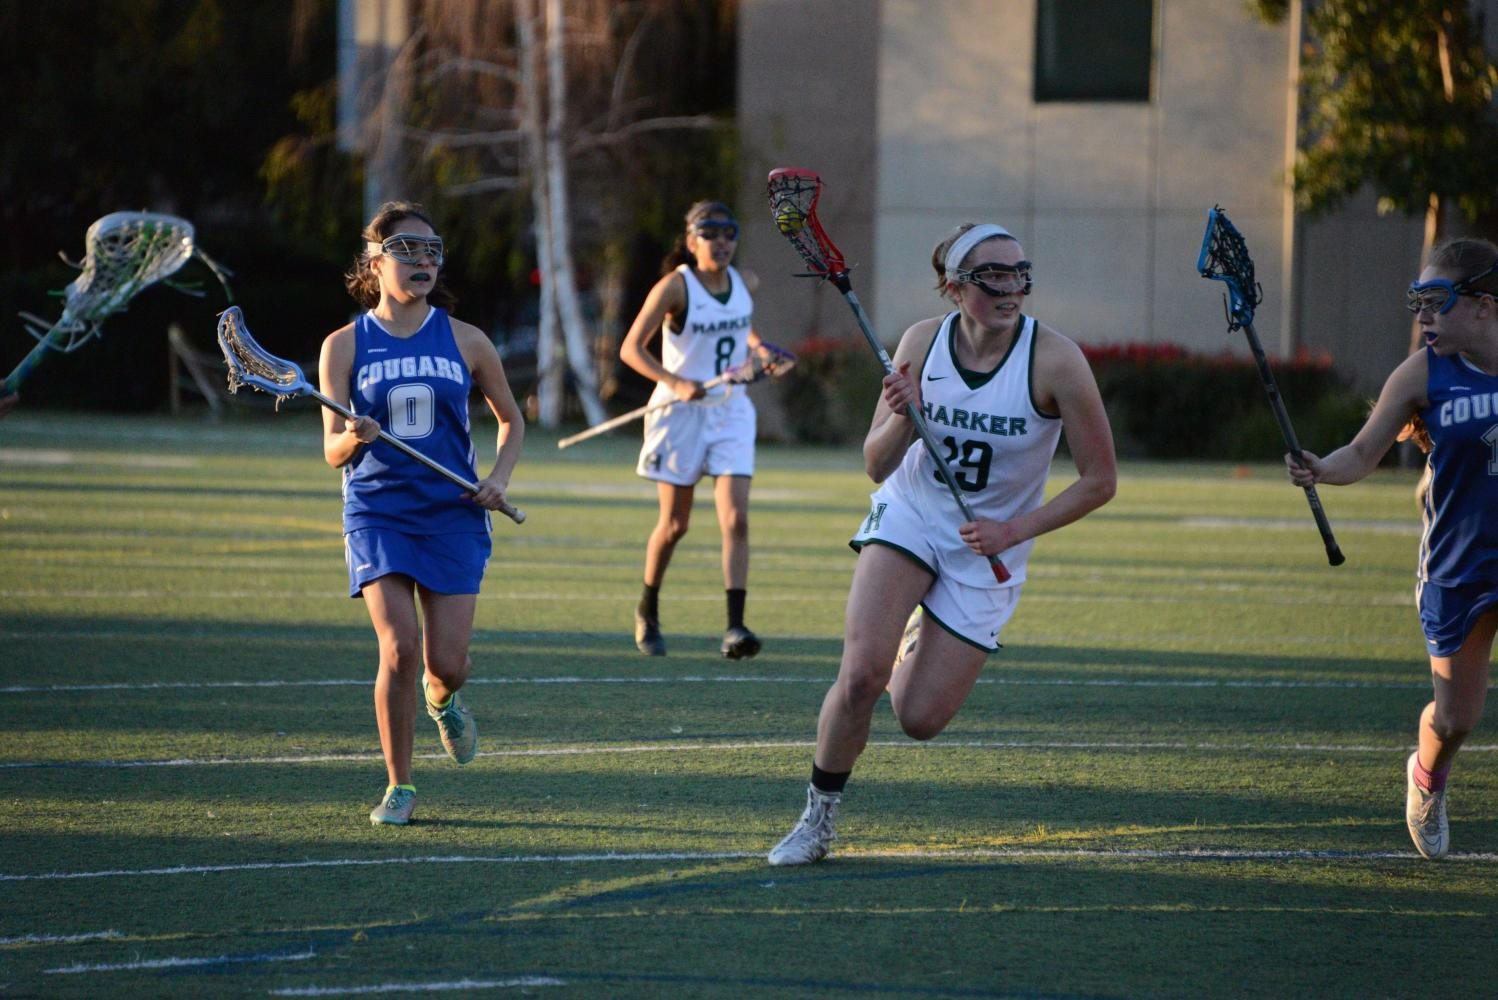 Alayna Richmond runs with the lacrosse ball. The lacrosse team currently holds a league record of 1-3.